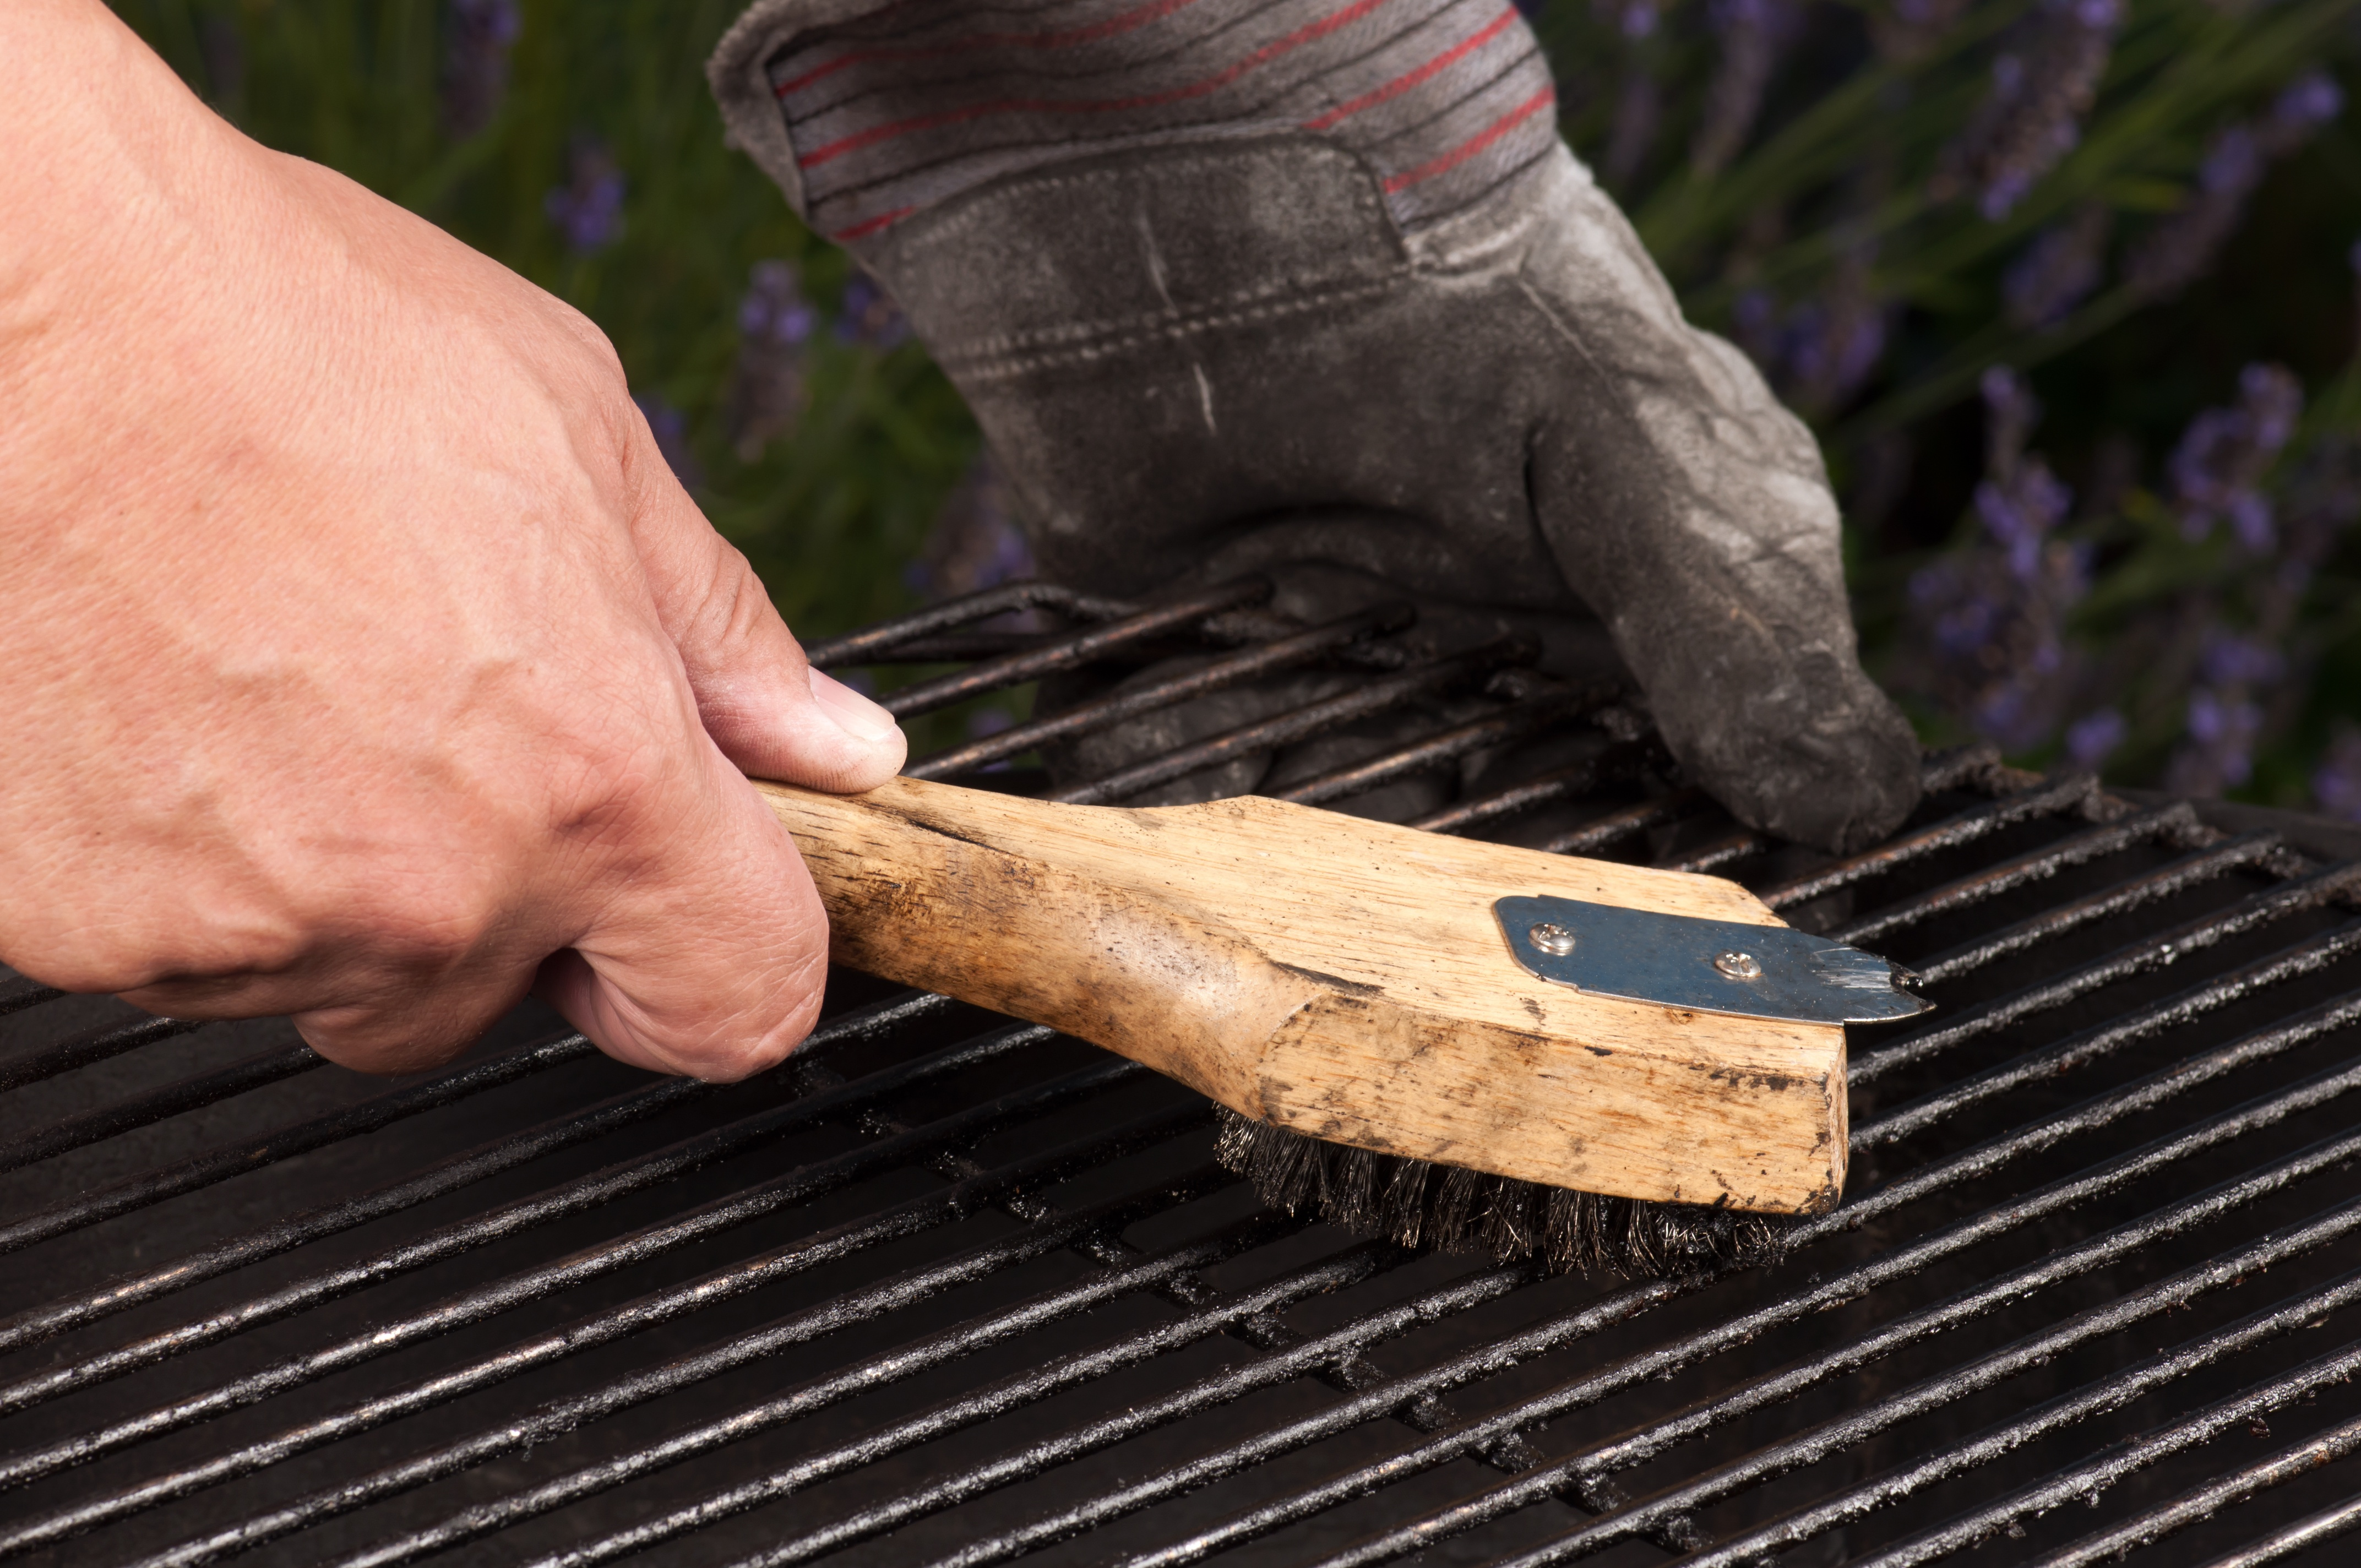 Maintaining your charcoal grill